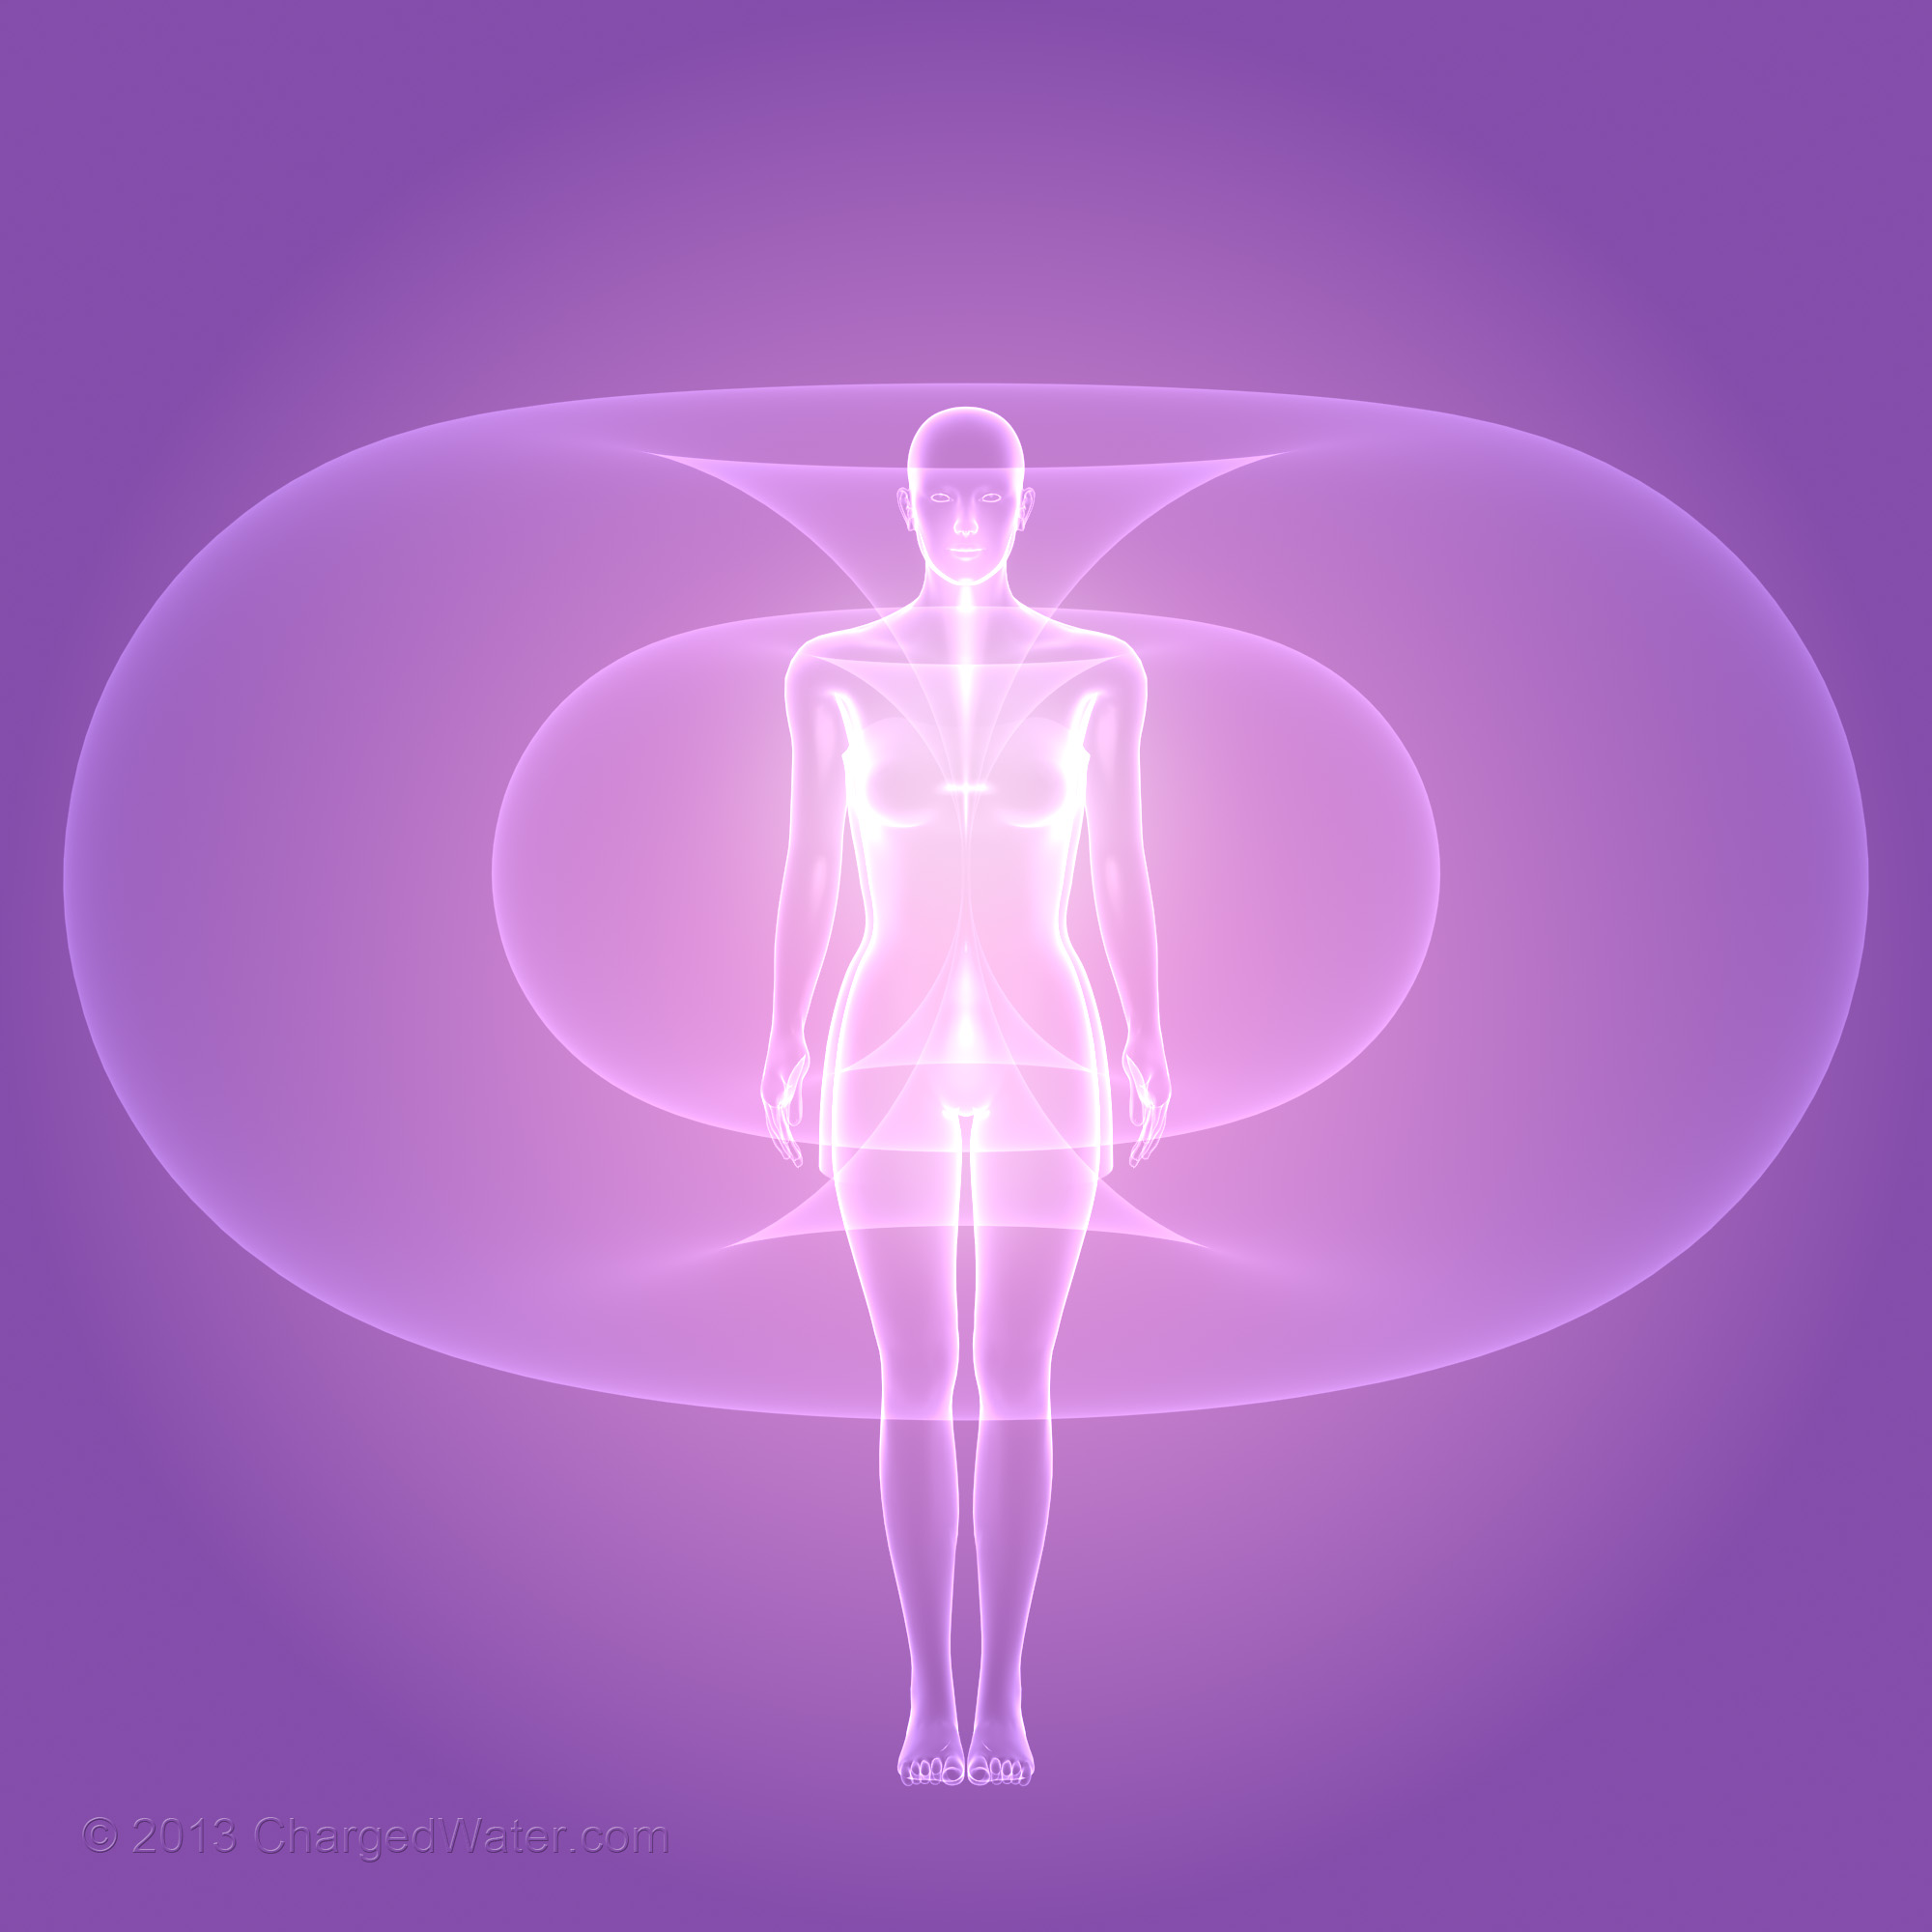 how to get the energy flow through heart chakra